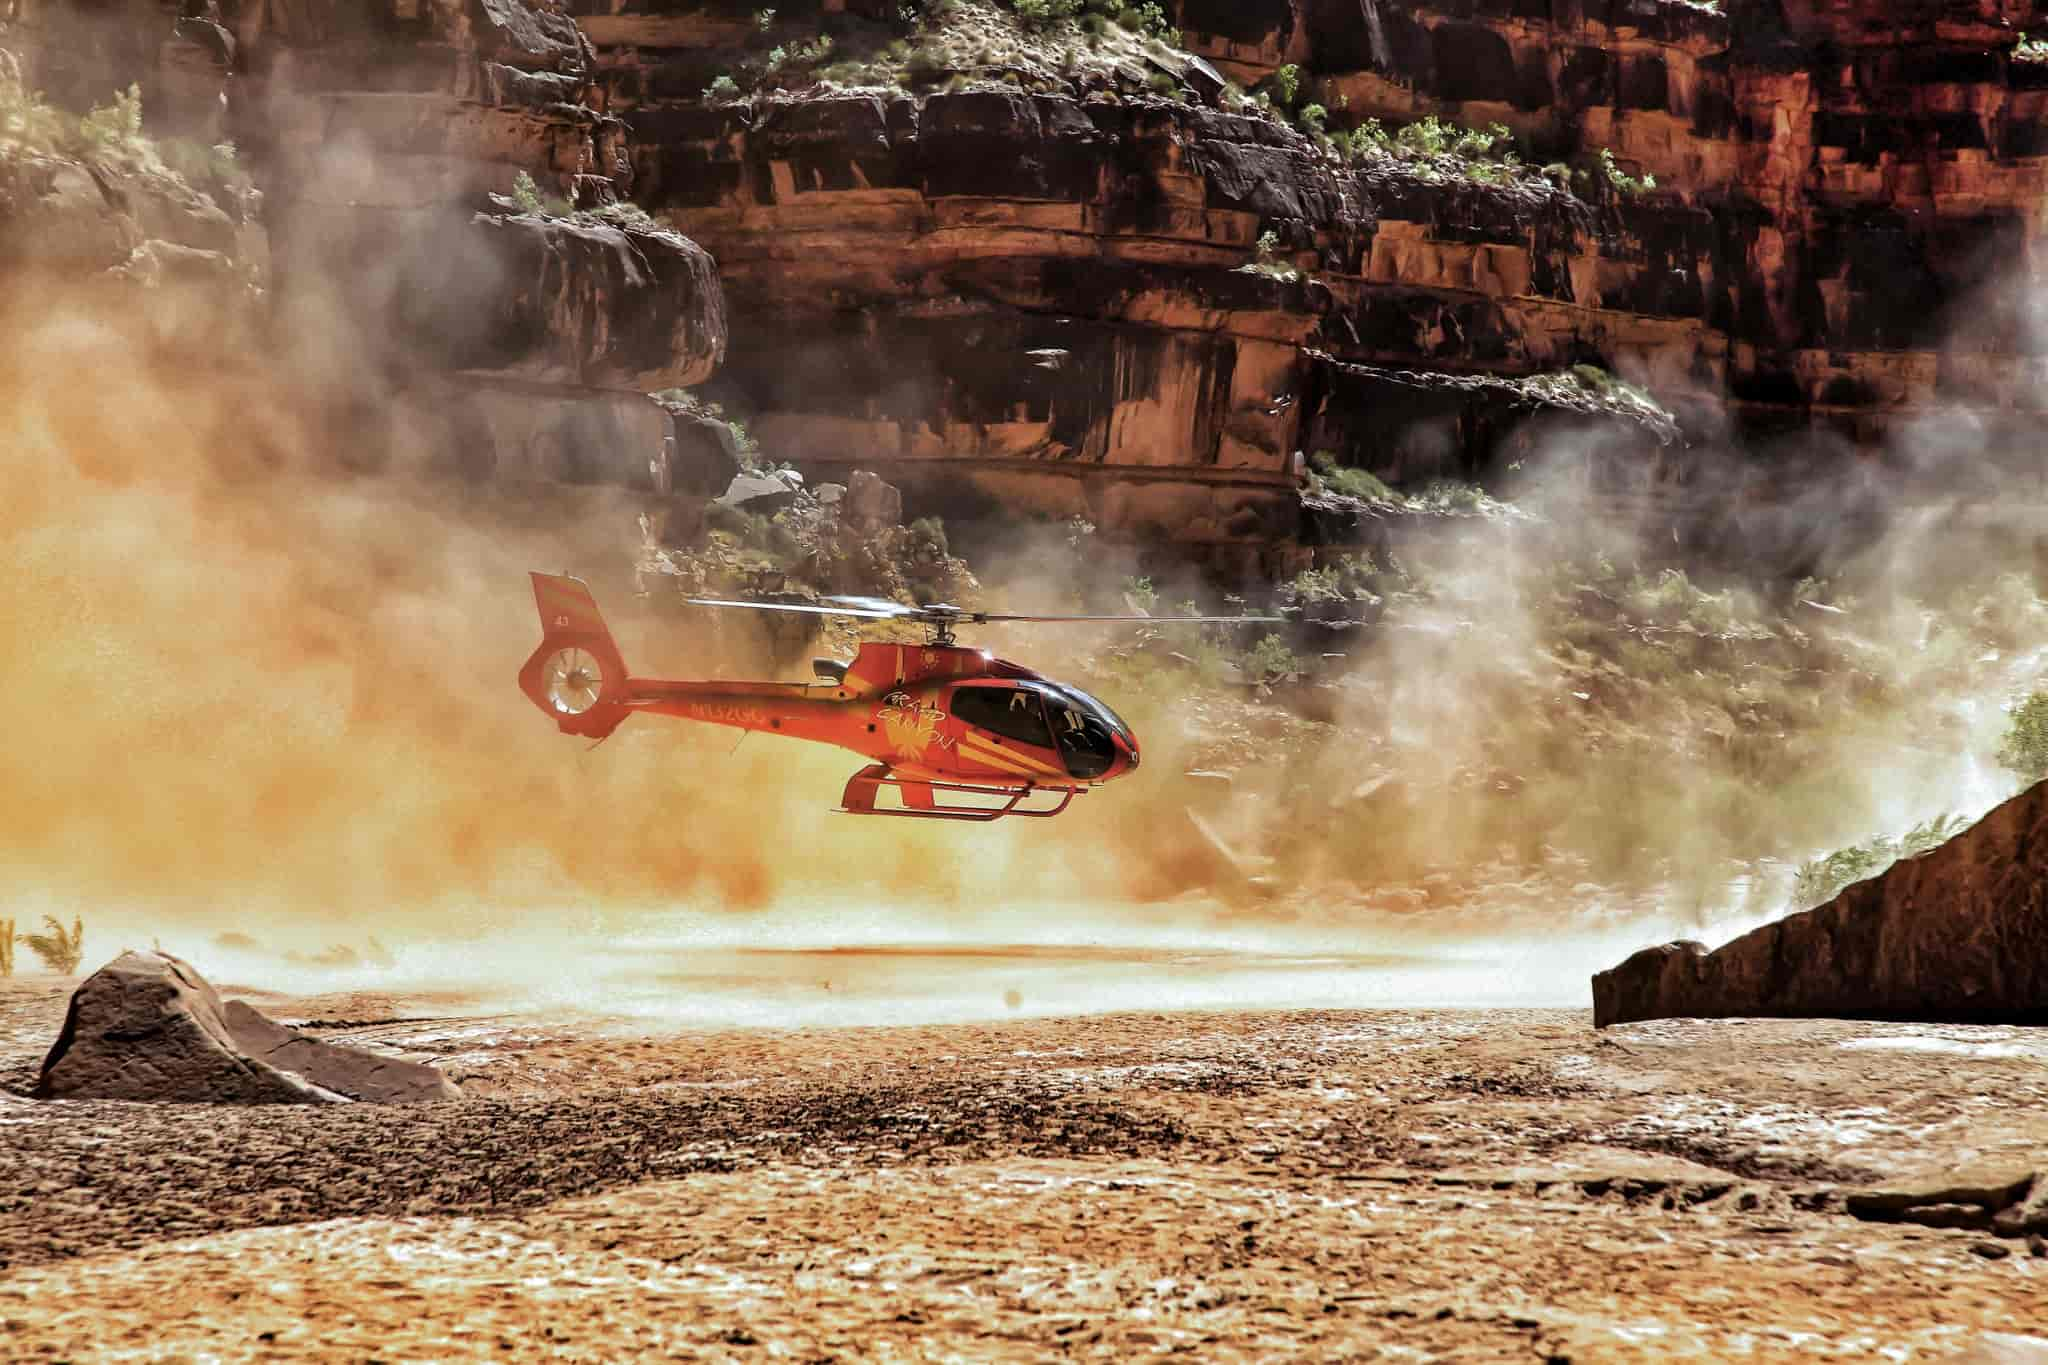 Helicopter lands in the bottom of a rocky canyon